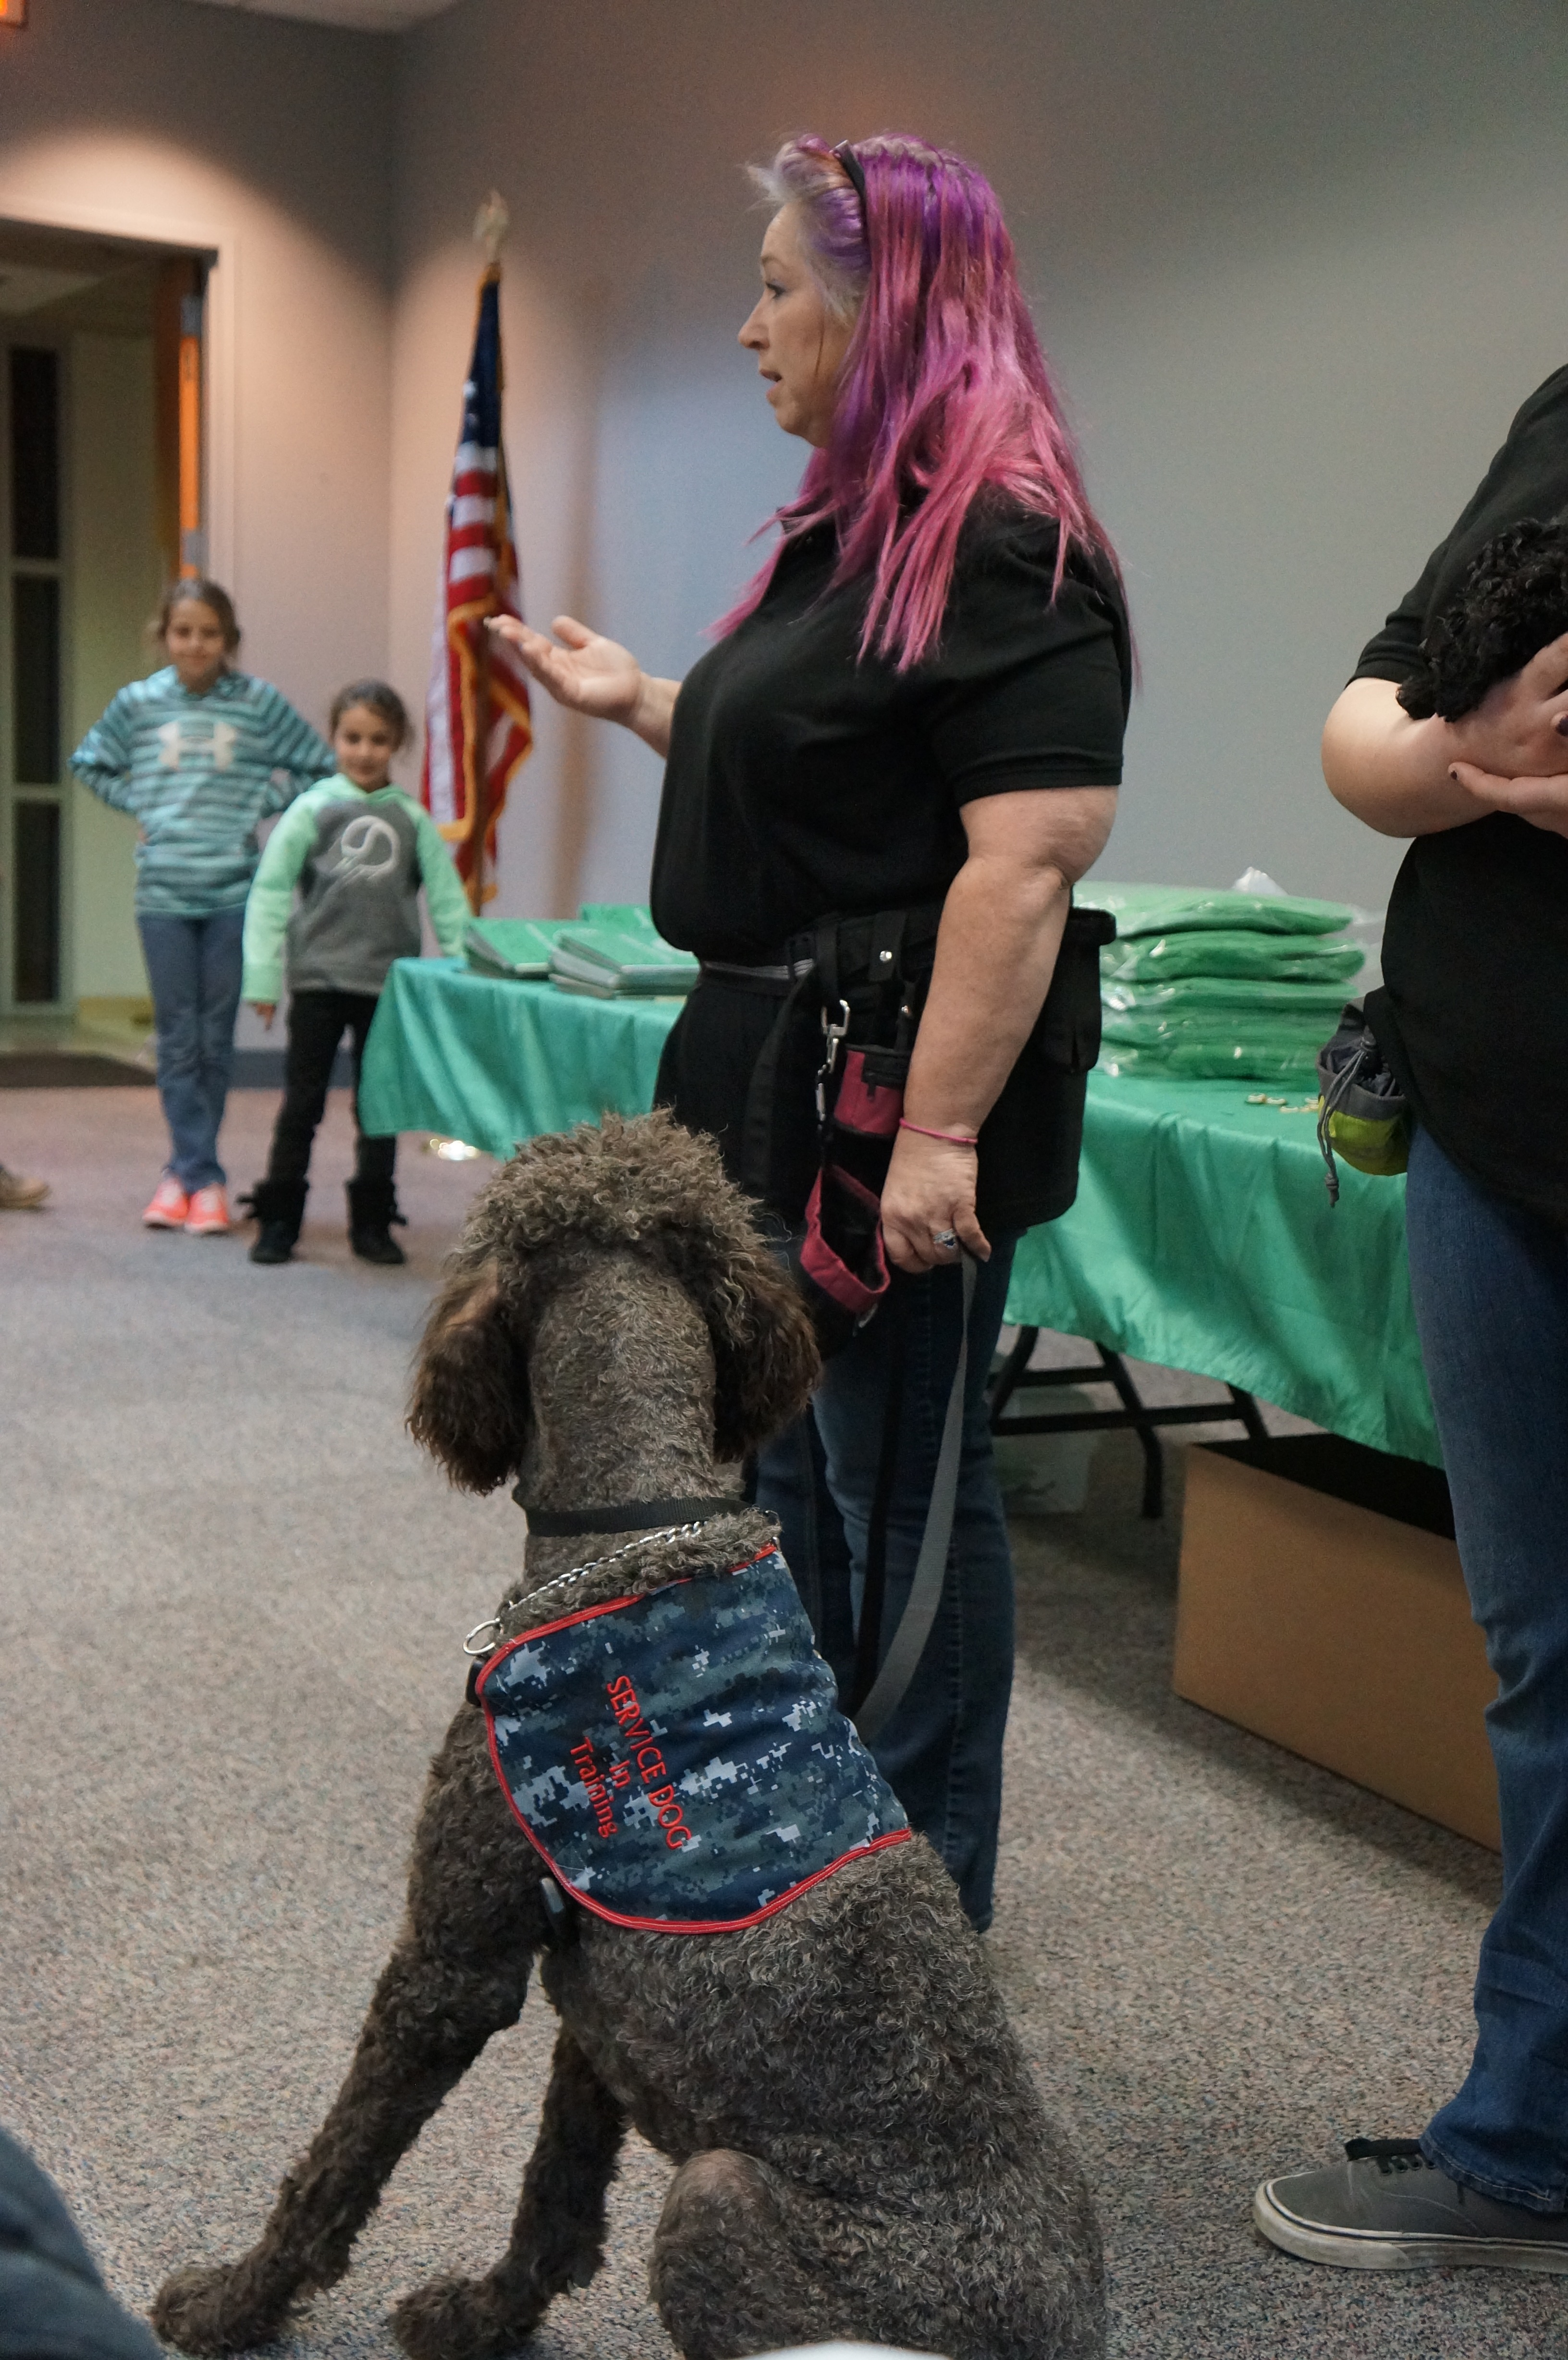 Service dog expert, Deborah Walo, demonstrates obedience with service dog.